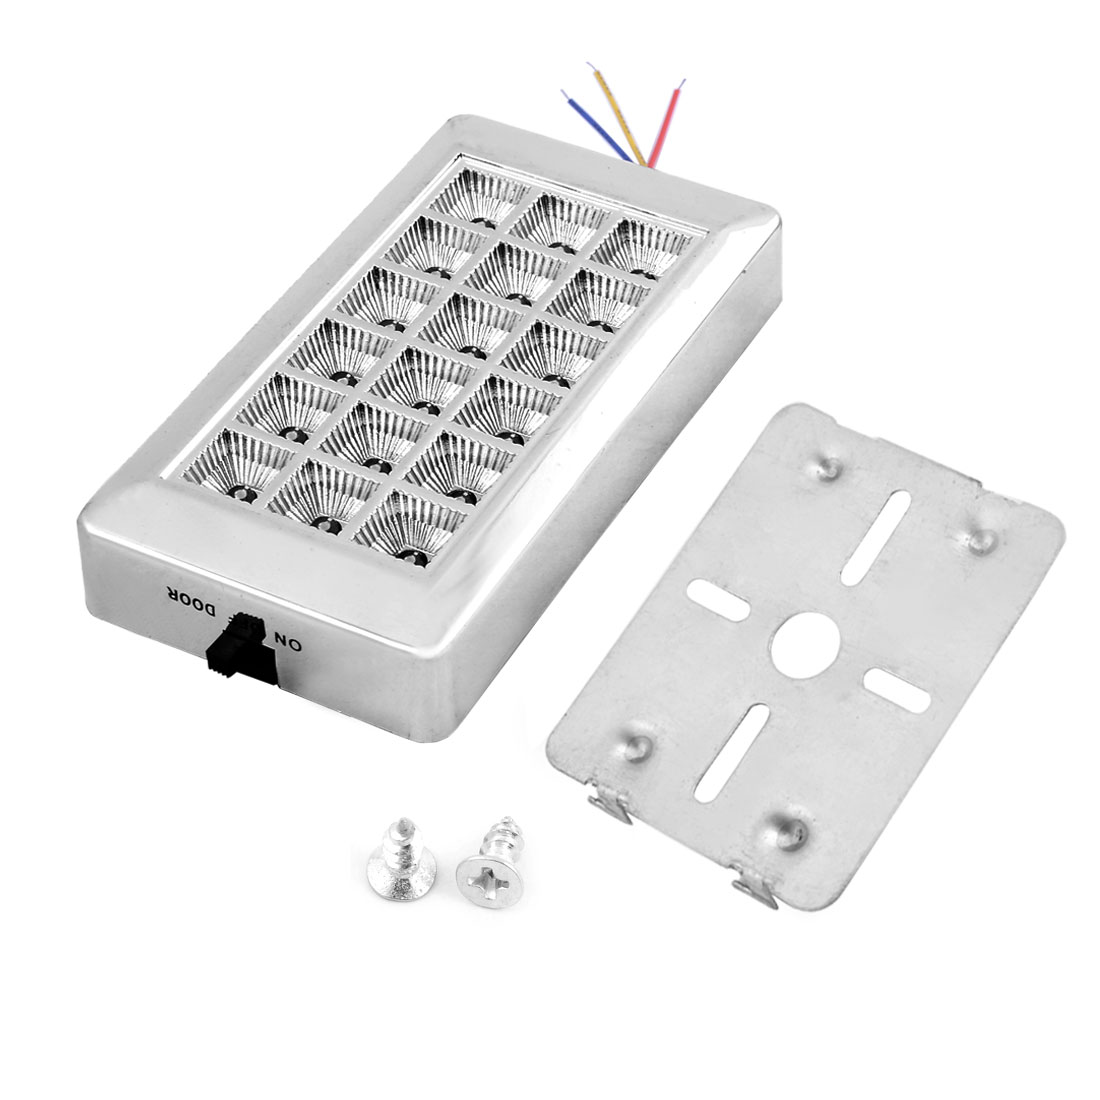 On Door Off Switch White 18 LEDs Indoor Roof Lamp Light 12V for Car Auto